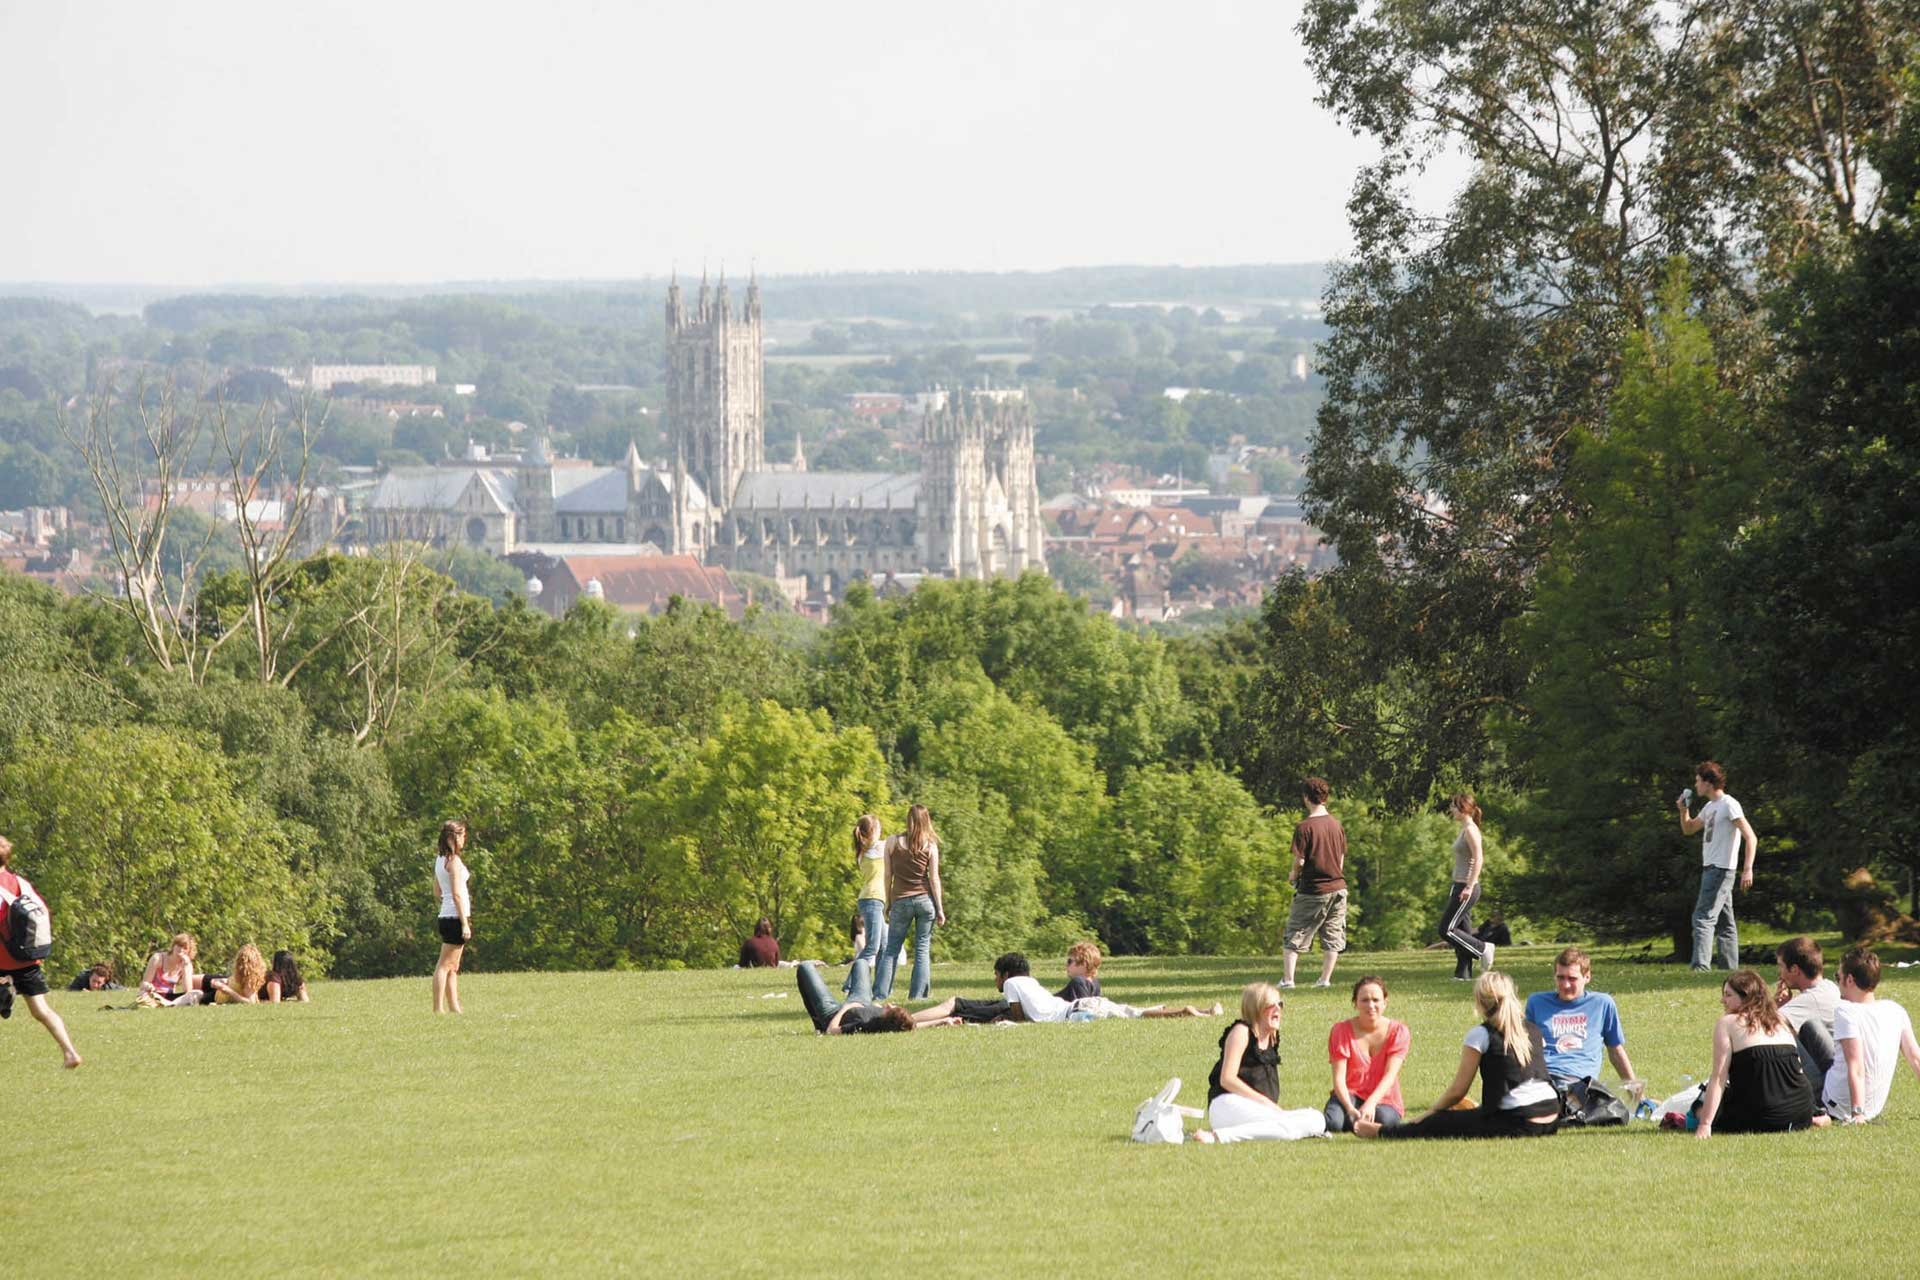 Students looking at the view of the Canterbury Cathedral from the campus parklands